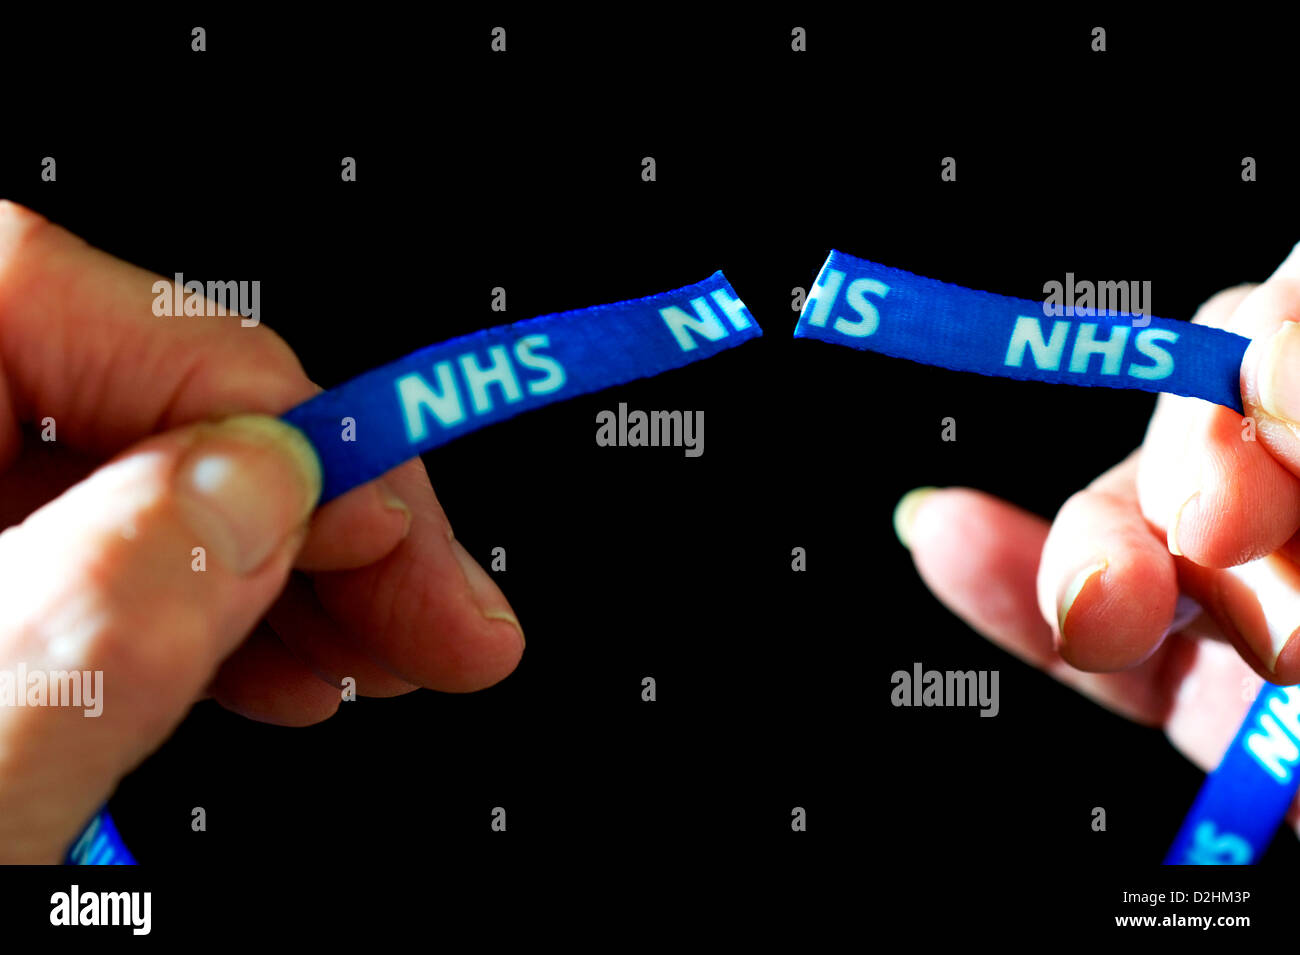 Two NHS ribbons being held apart after they have been cut. NHS Efficiency Savings. On black background - Stock Image